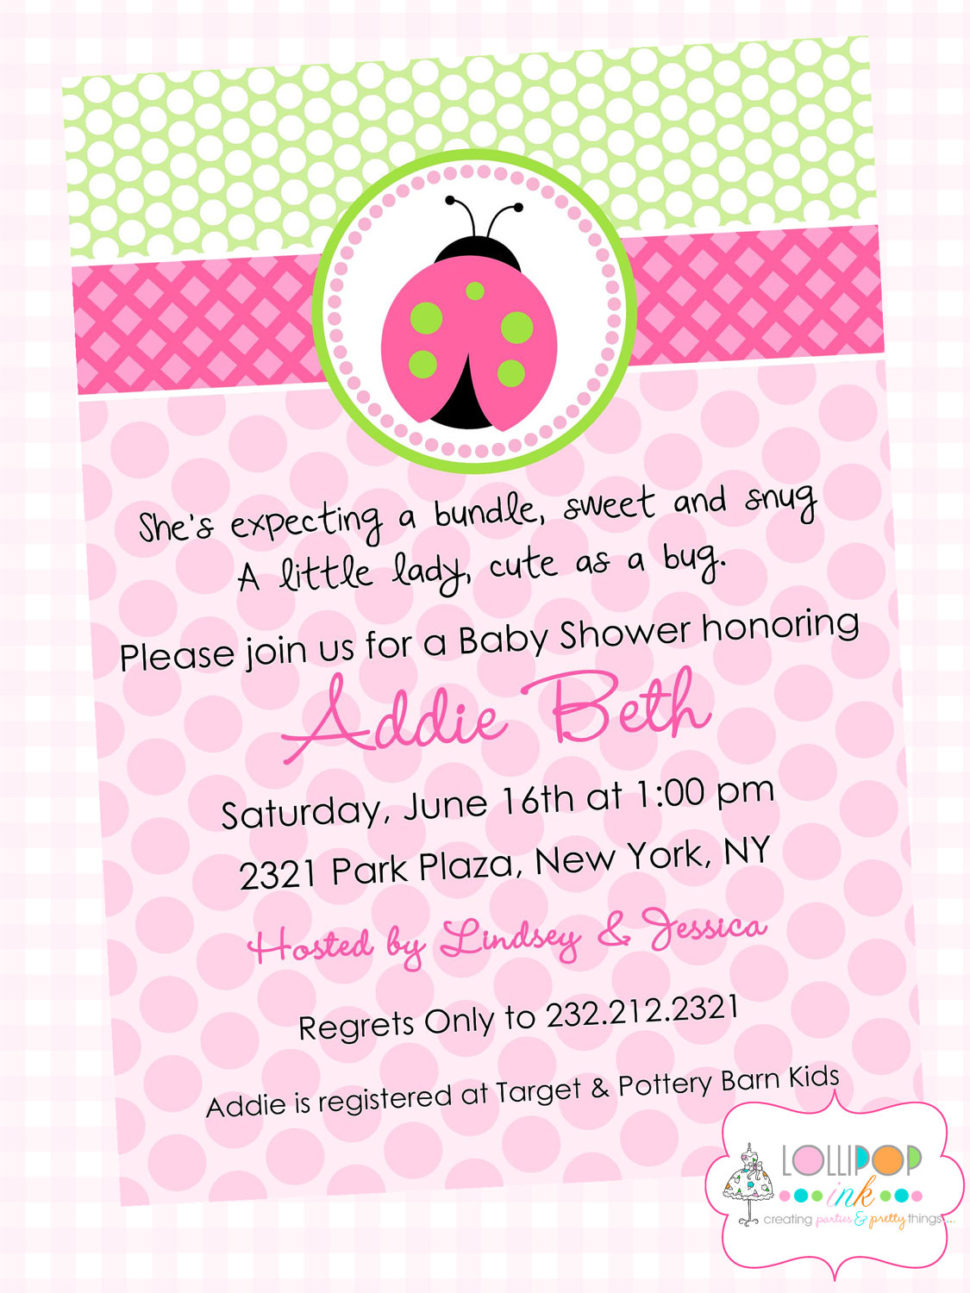 Medium Size of Baby Shower:baby Shower Halls With Baby Shower At The Park Plus Recuerdos De Baby Shower Together With Fun Baby Shower Games As Well As Baby Shower Hostess Gifts And Baby Shower Verses Baby Shower Invitation Wording Baby Shower Invitations Wording To Make Adorable Baby Shower Invitation Design Online 41020165